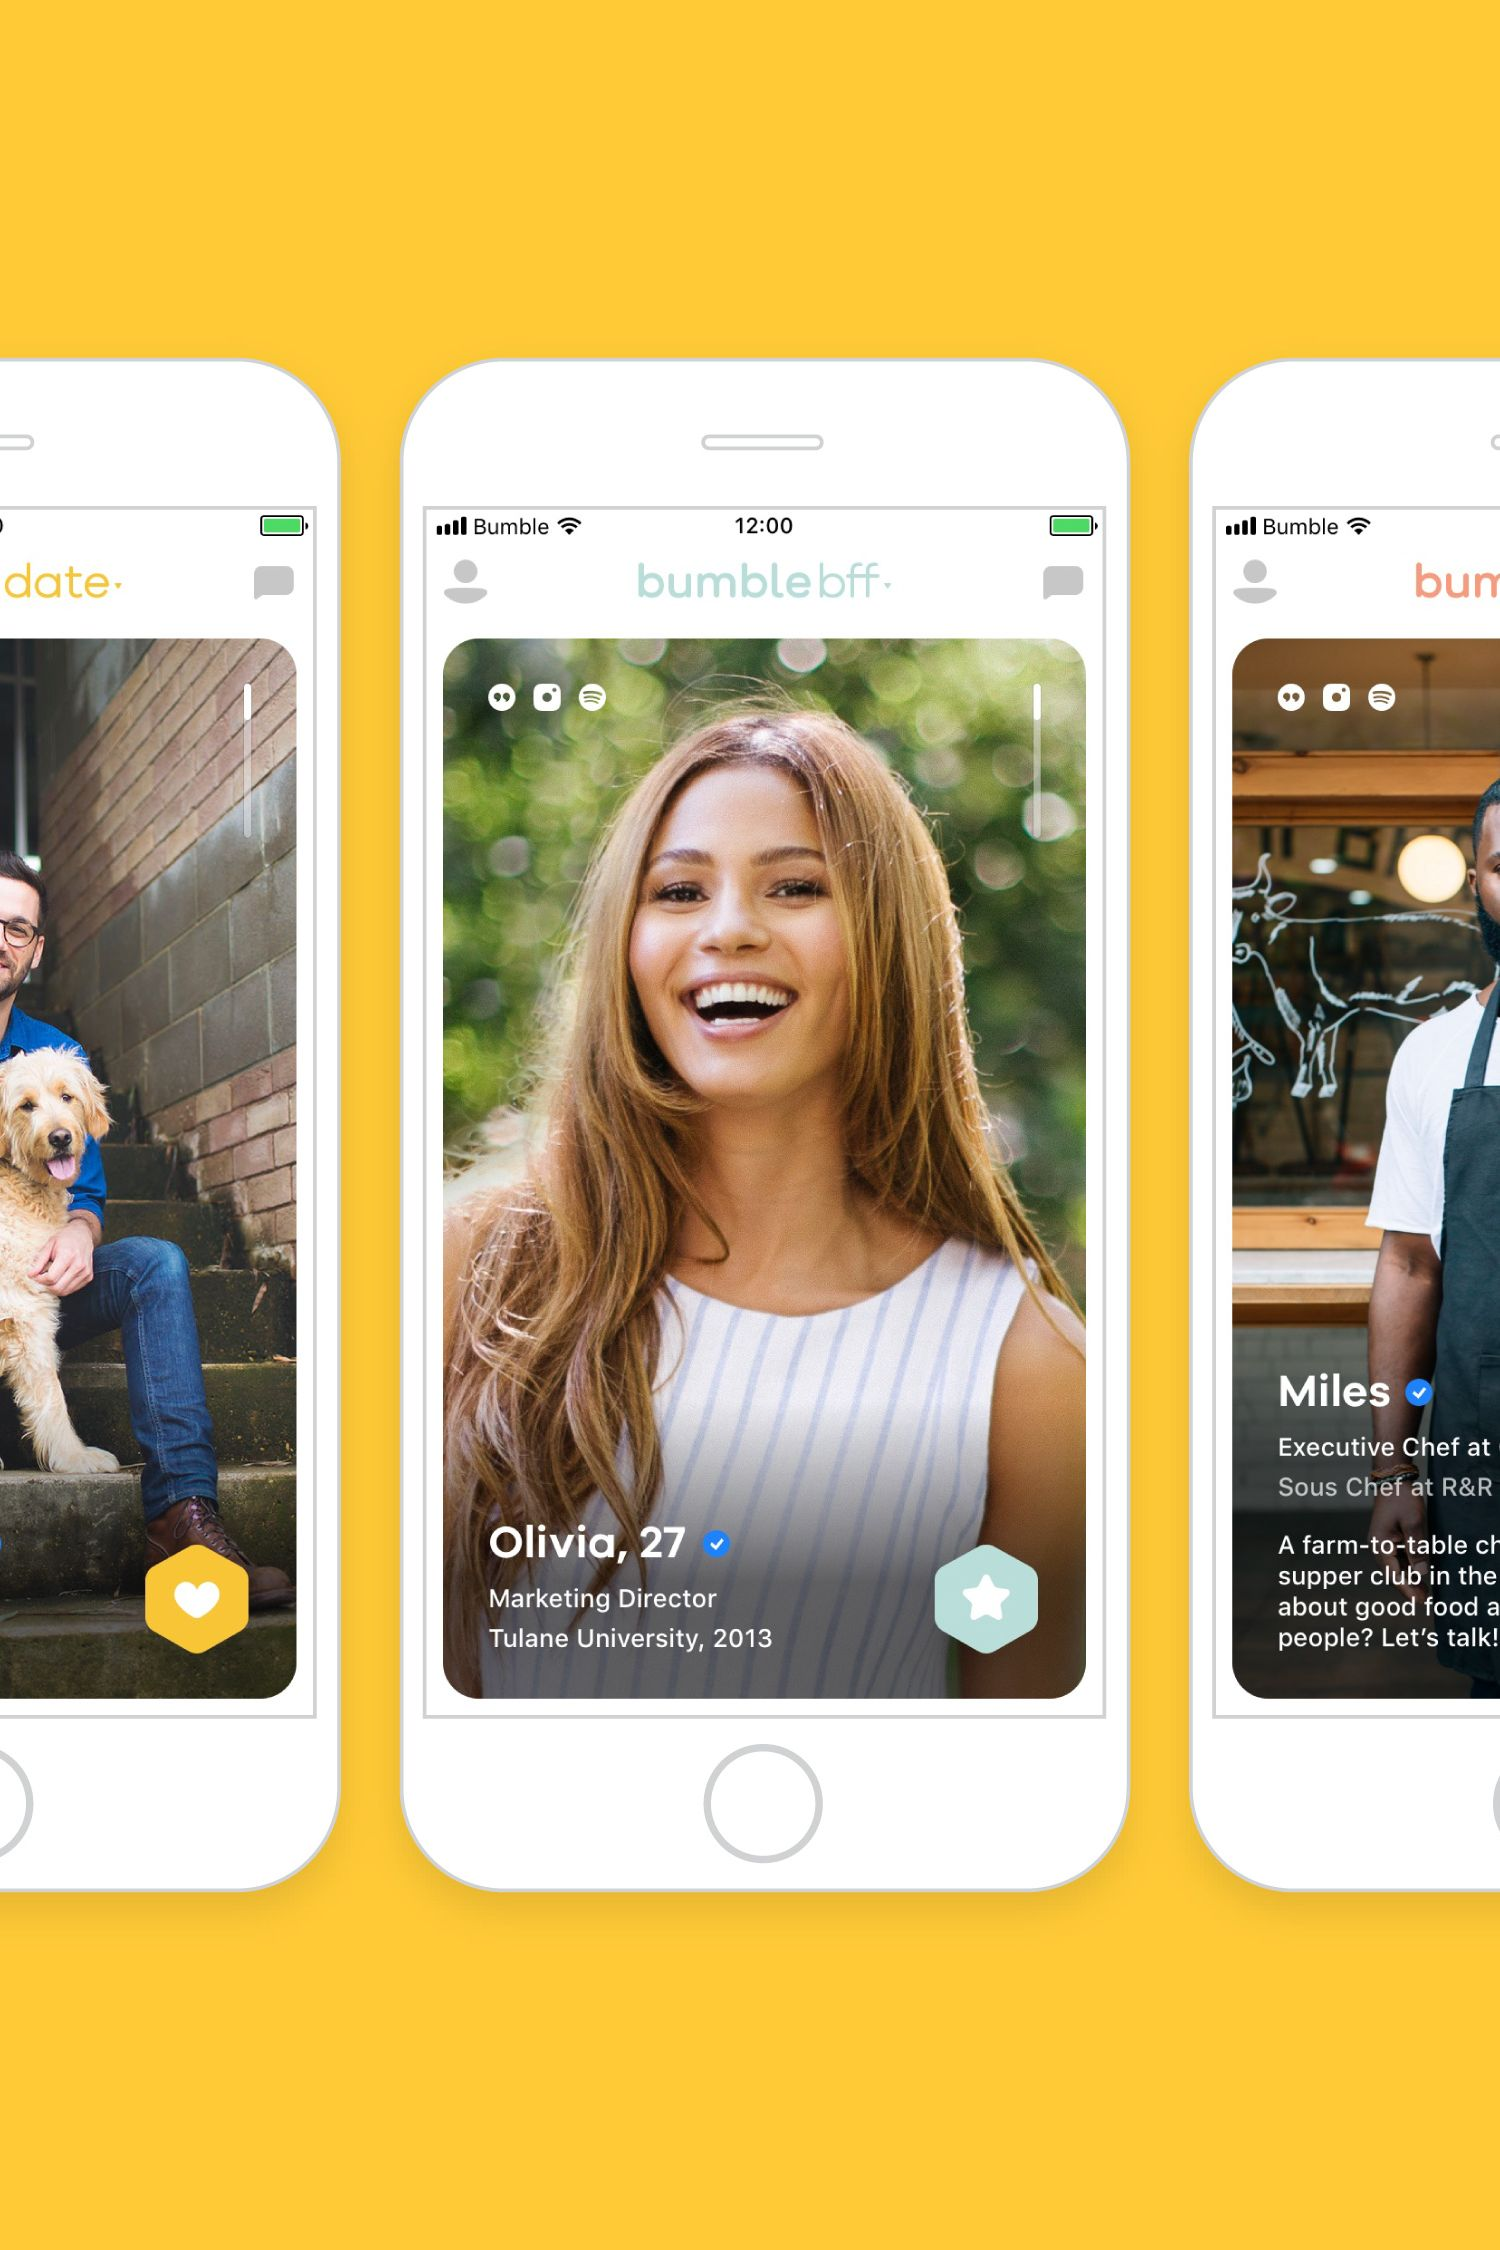 Best dating apps 2019 usa